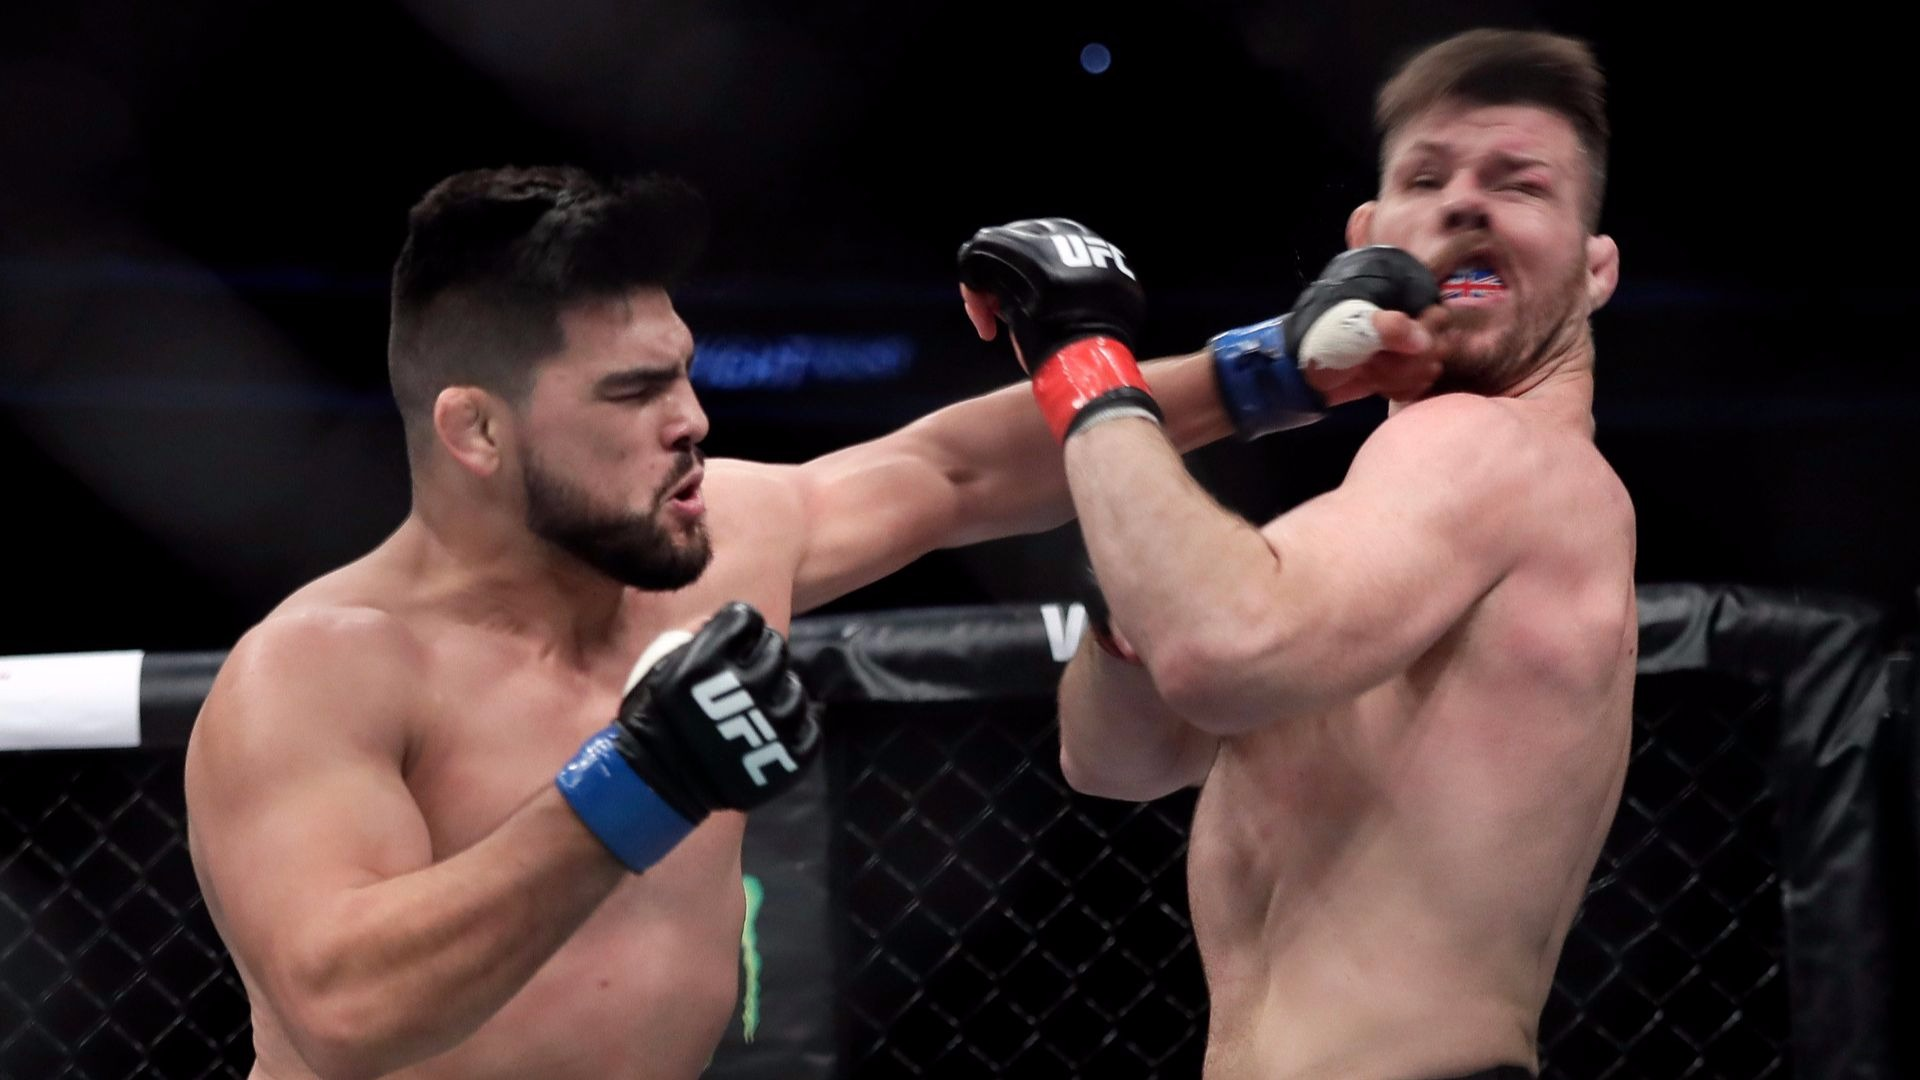 Is Michael Bisping Close To Retirement After This Brutal Knockout?